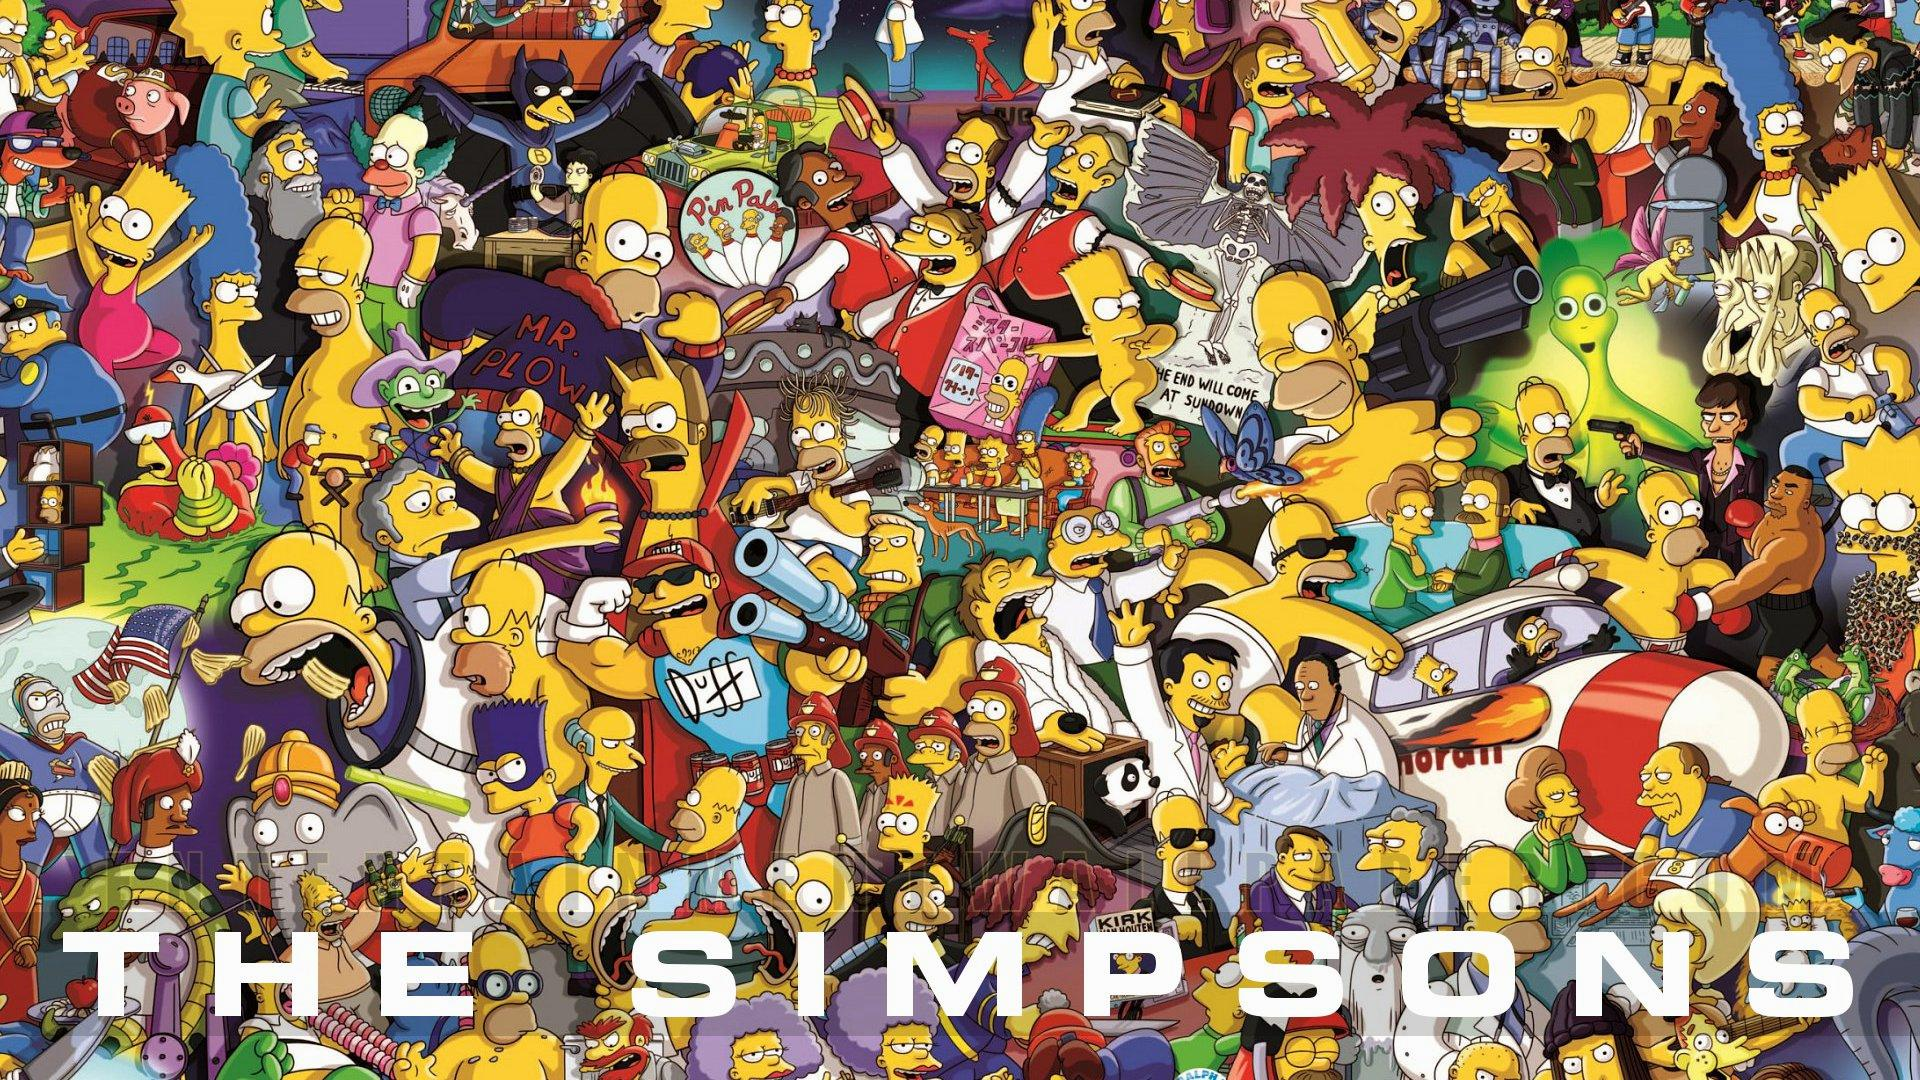 simpsons texas tech term paper Texas state board report 5 august 2002 daphna simpson self-employed roberta allen texas tech university ben trotter texas tech university san antonio ann laskowski brehm, havel & co.